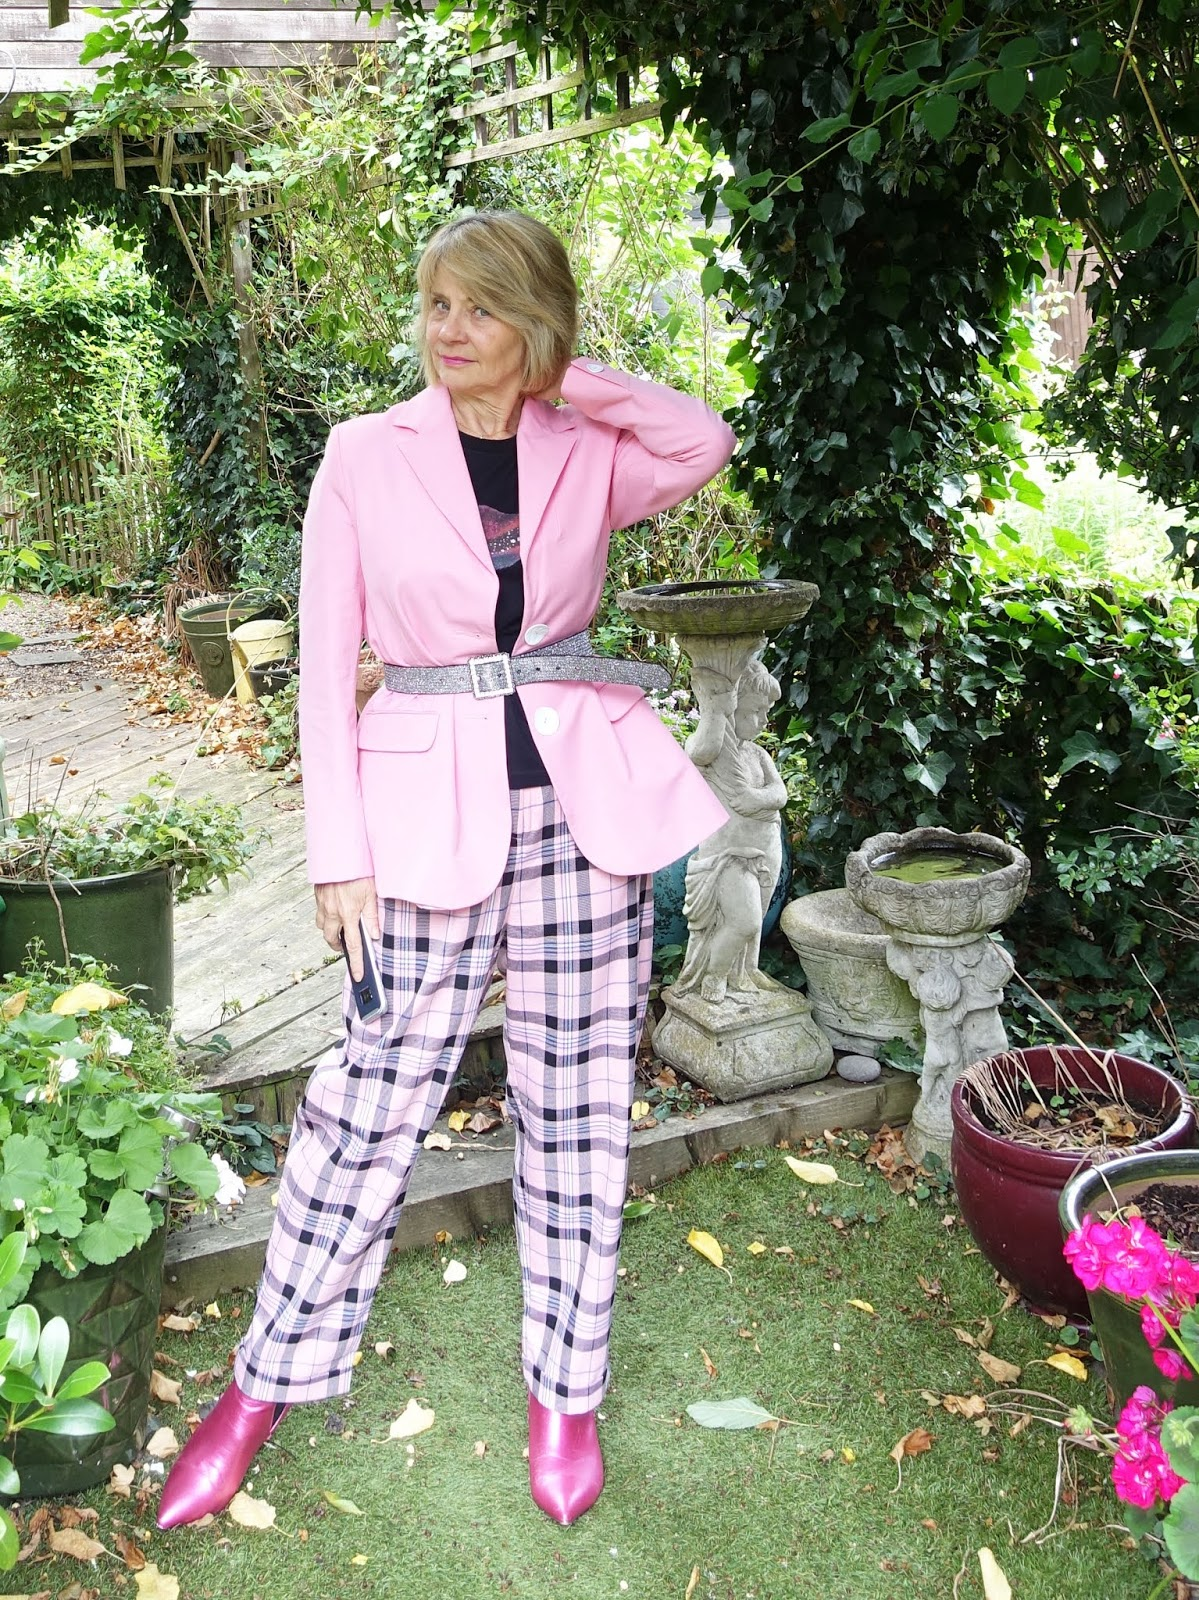 A colourful casual and smart outfit for any age - check trousers with ankle boots and belted oversize jacket worn by Gail Hanlon of Is This Mutton, the over-50s style blog